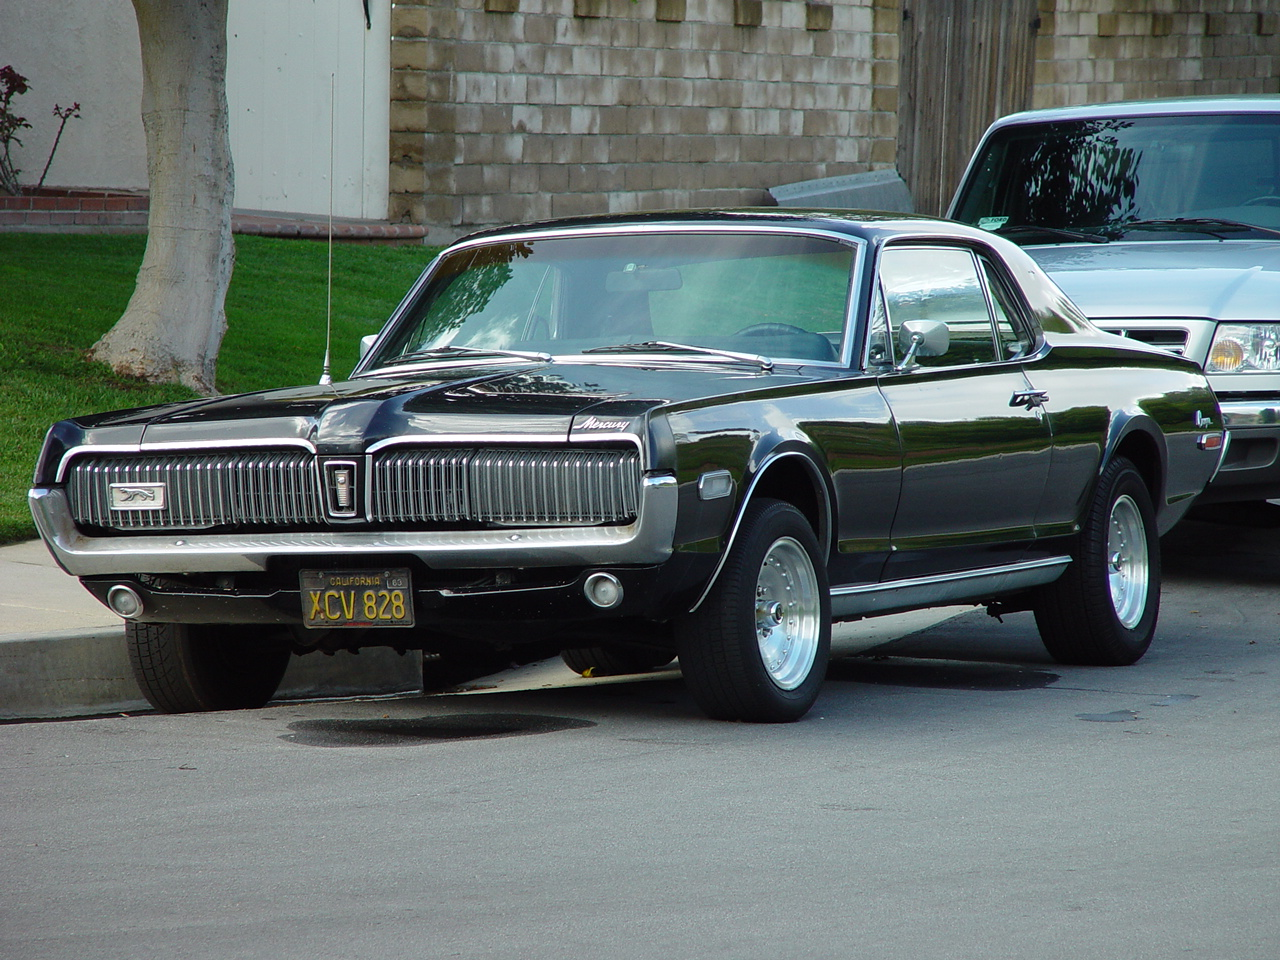 1968 mercury cougar - pictures